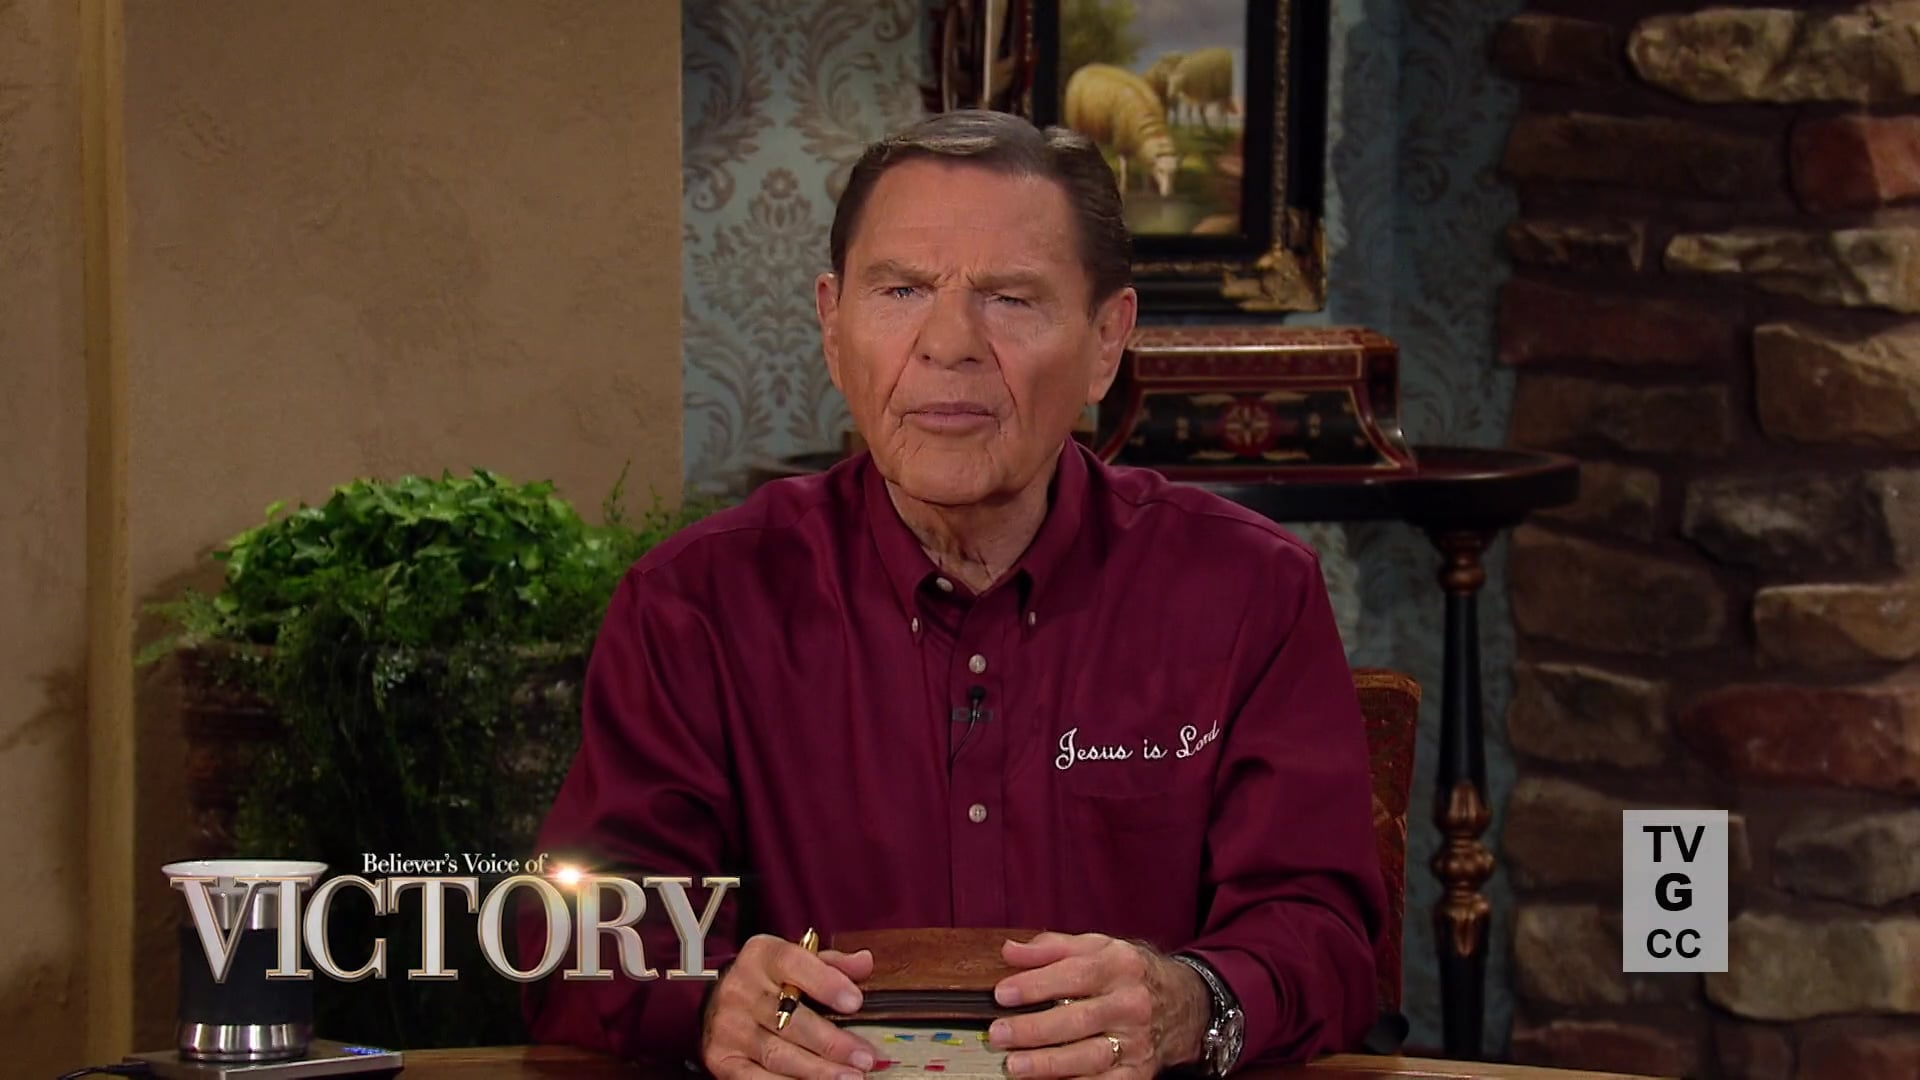 It's time to come up higher! Watch Believer's Voice of Victory as Kenneth Copeland and Professor Greg Stephens discuss the significance of Jesus speaking a BLESSING over His people as He began to ascend to heaven. Discover how THE BLESSING will lift you up out of all trials, tribulations and anything else holding you down!